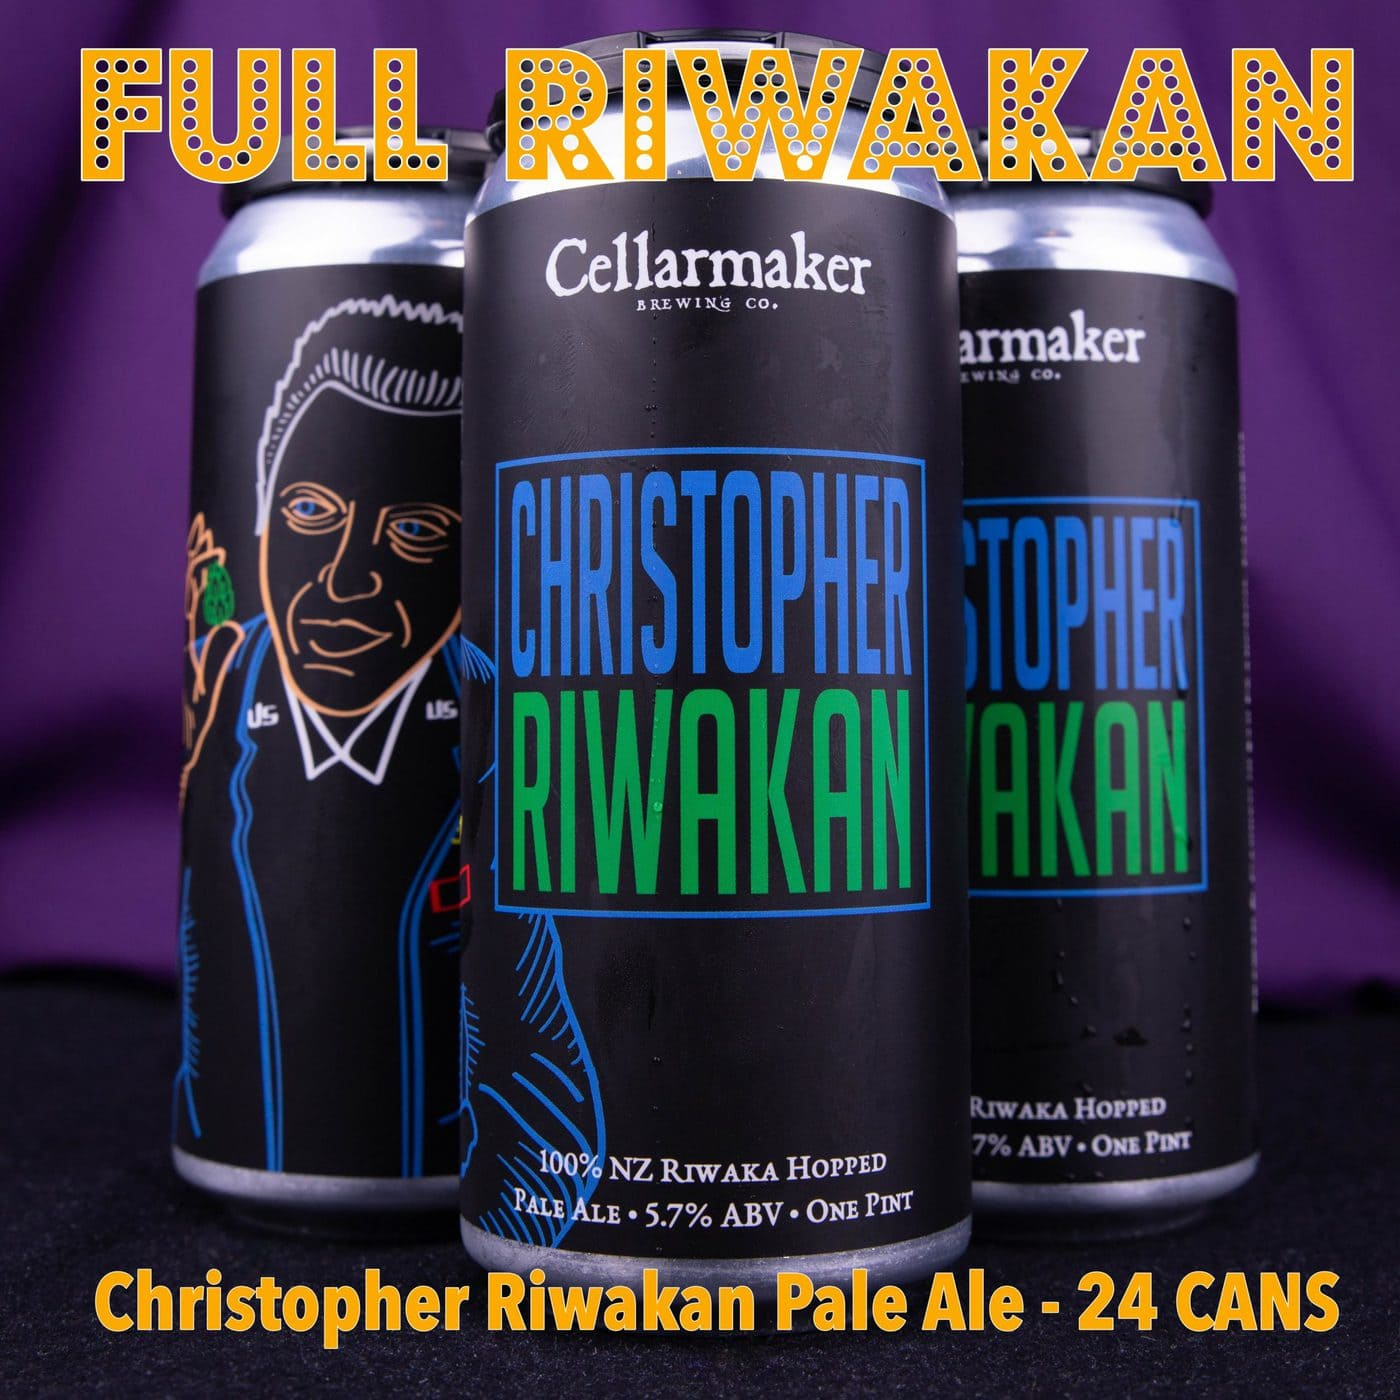 FULL CASE 24 CANS Christopher Riwakan Pale Ale … SHIPPING Out On TUESDAY 1/12 For NEXT DAY Delivery*